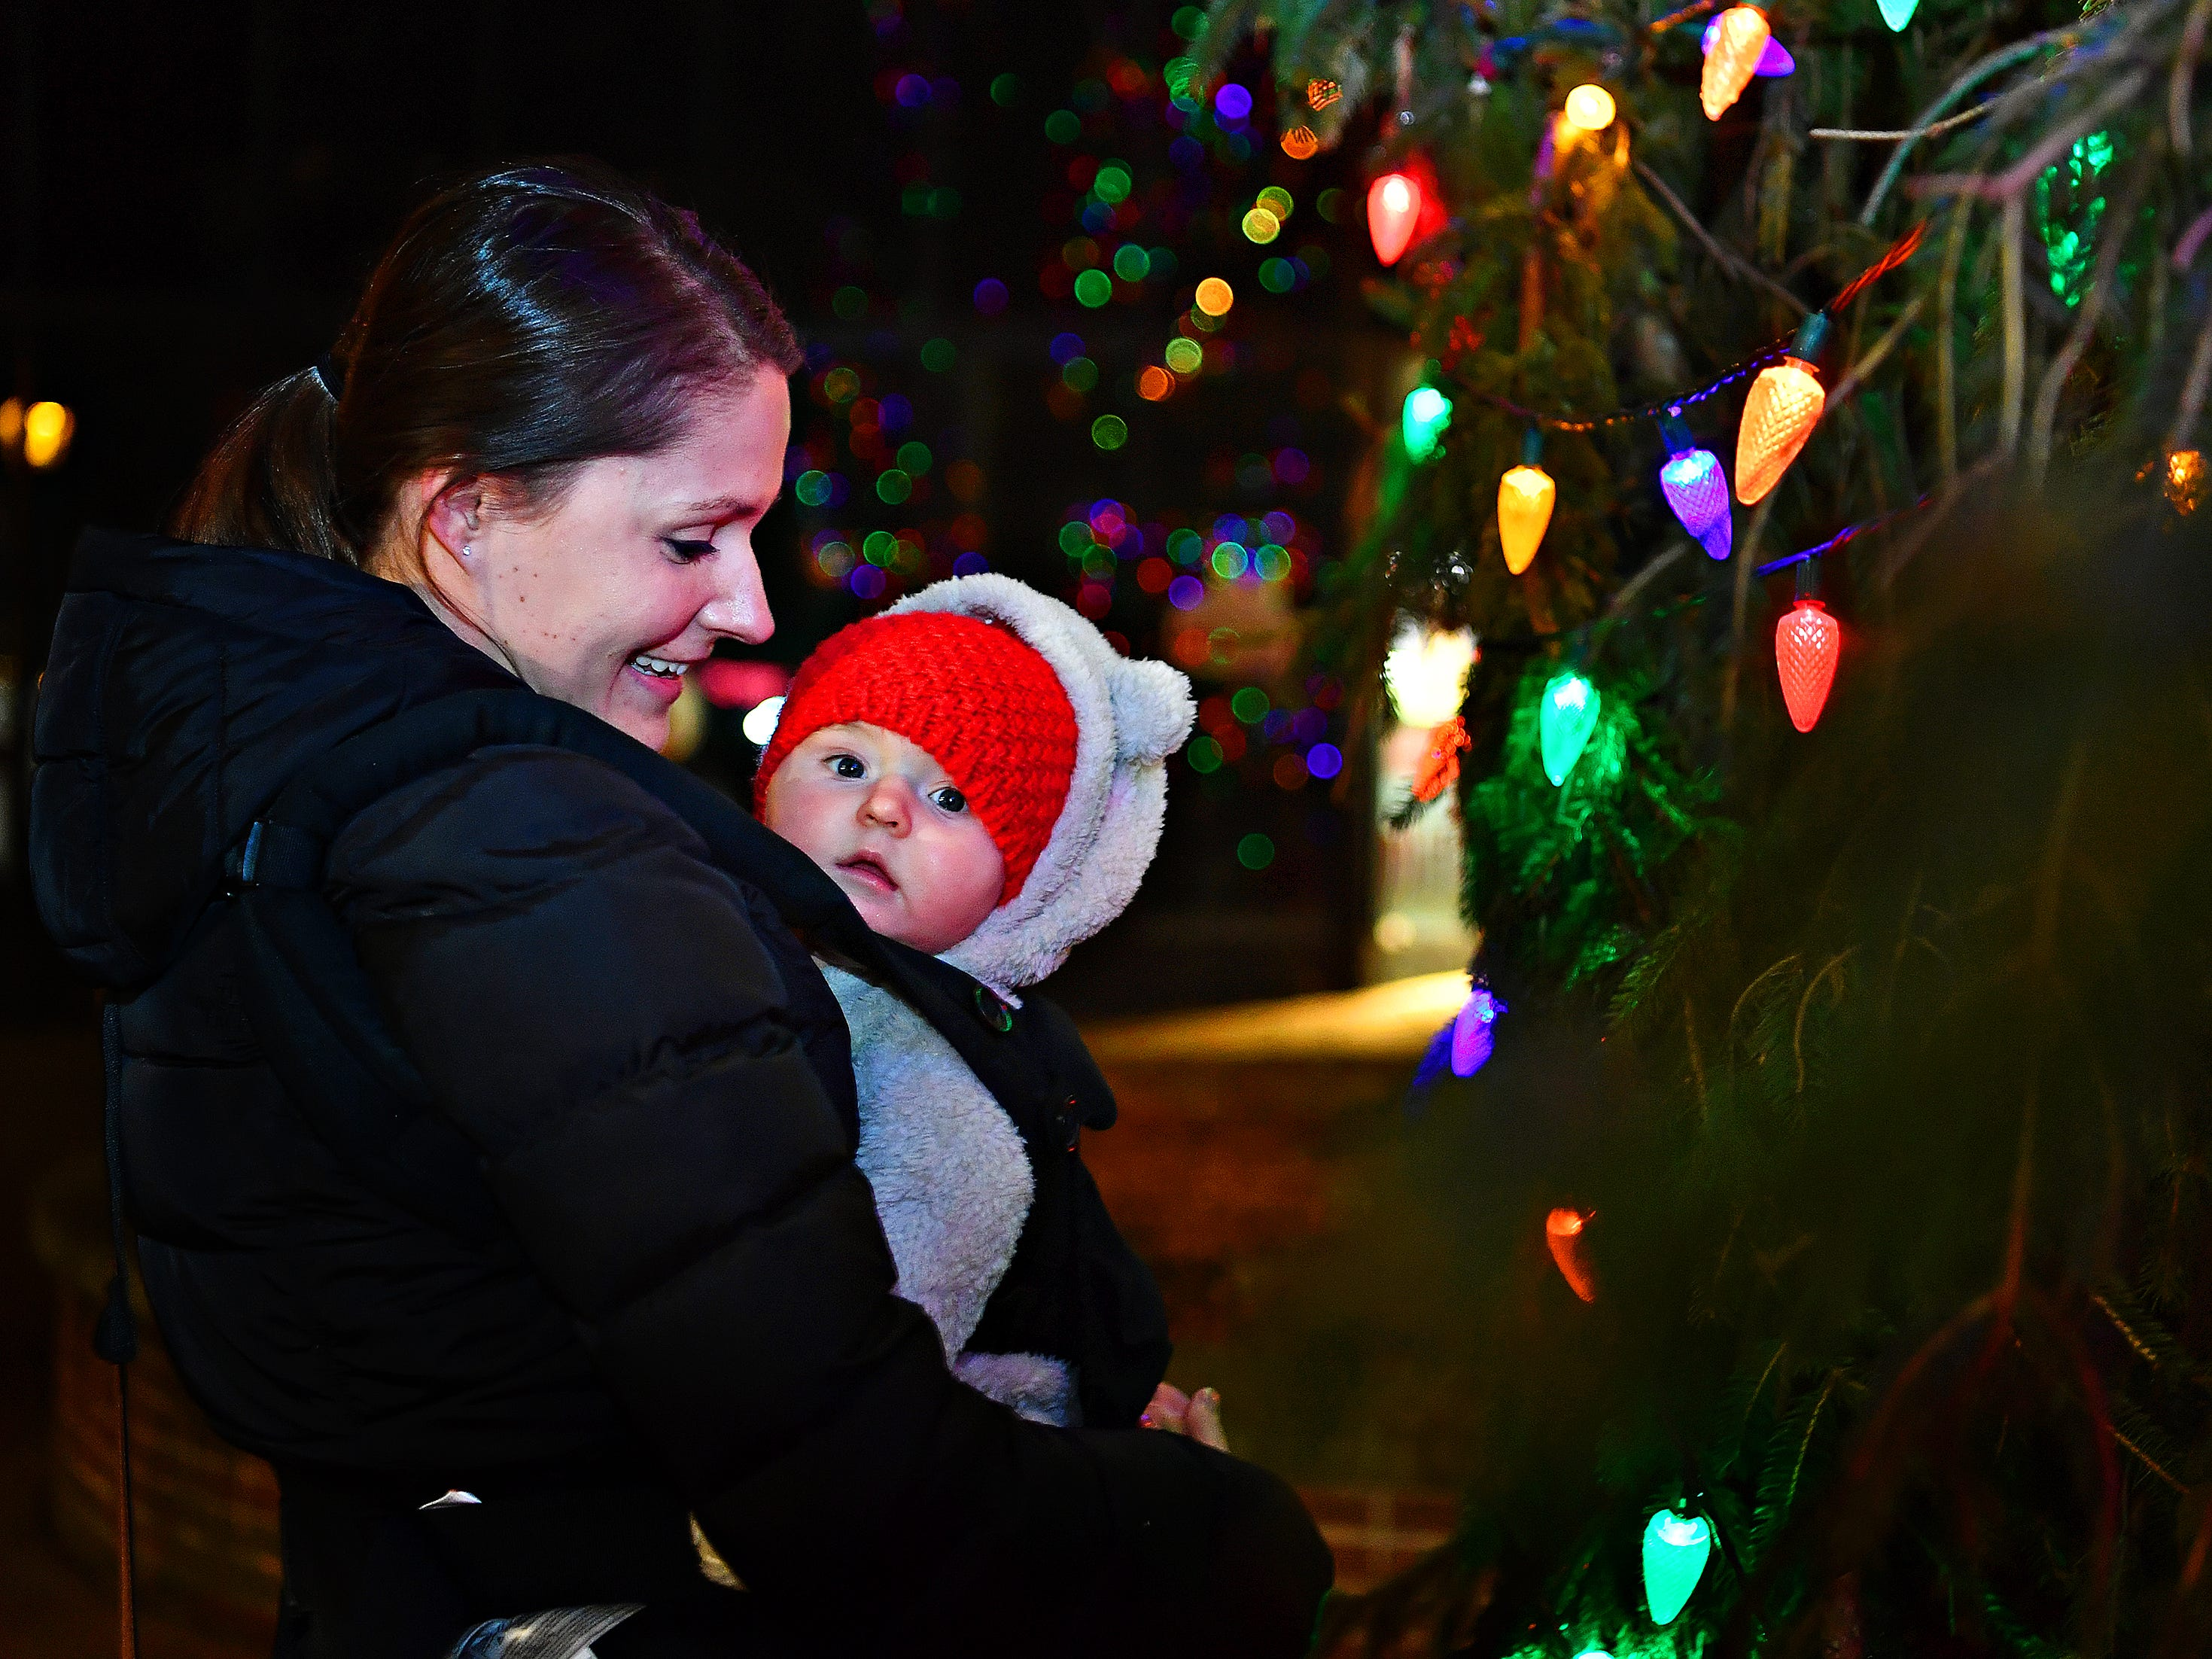 Jenny Statella, of York Township, holds 5-month-old Wylie Statella following the tree lighting during Light Up York in York City, Saturday, Dec. 1, 2018. Dawn J. Sagert photo